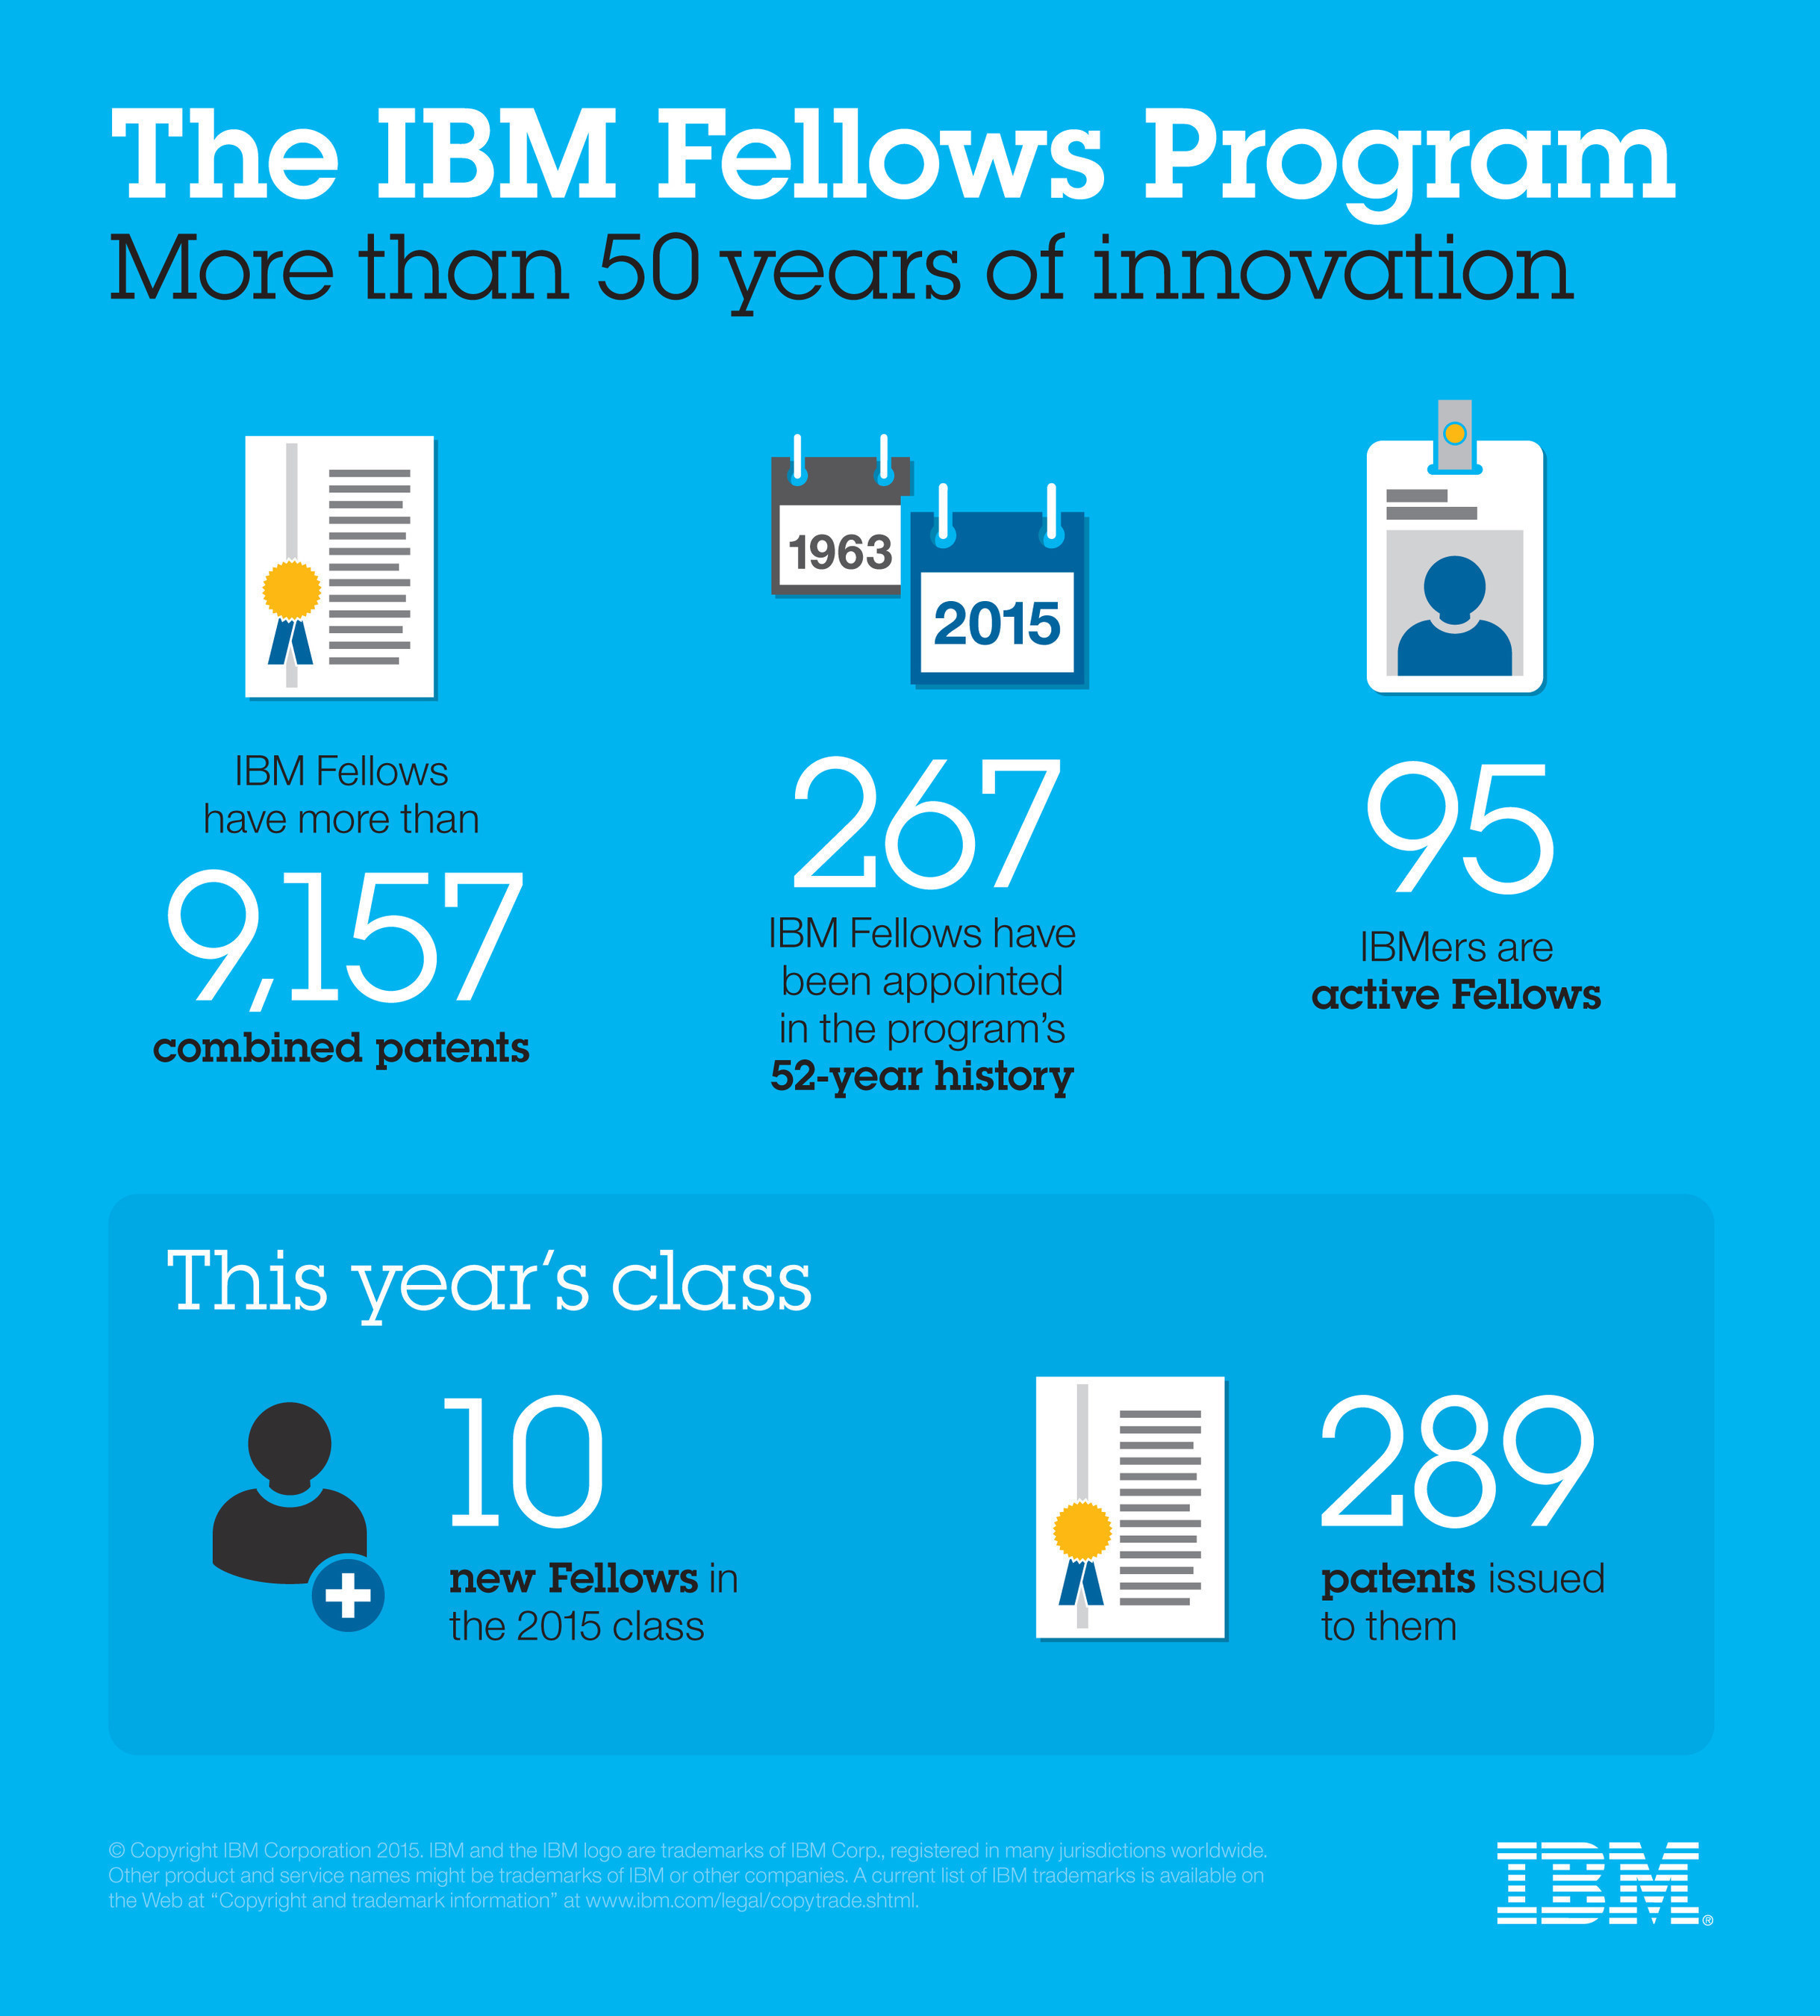 Meet the class of 2015, and their place in IBM history.